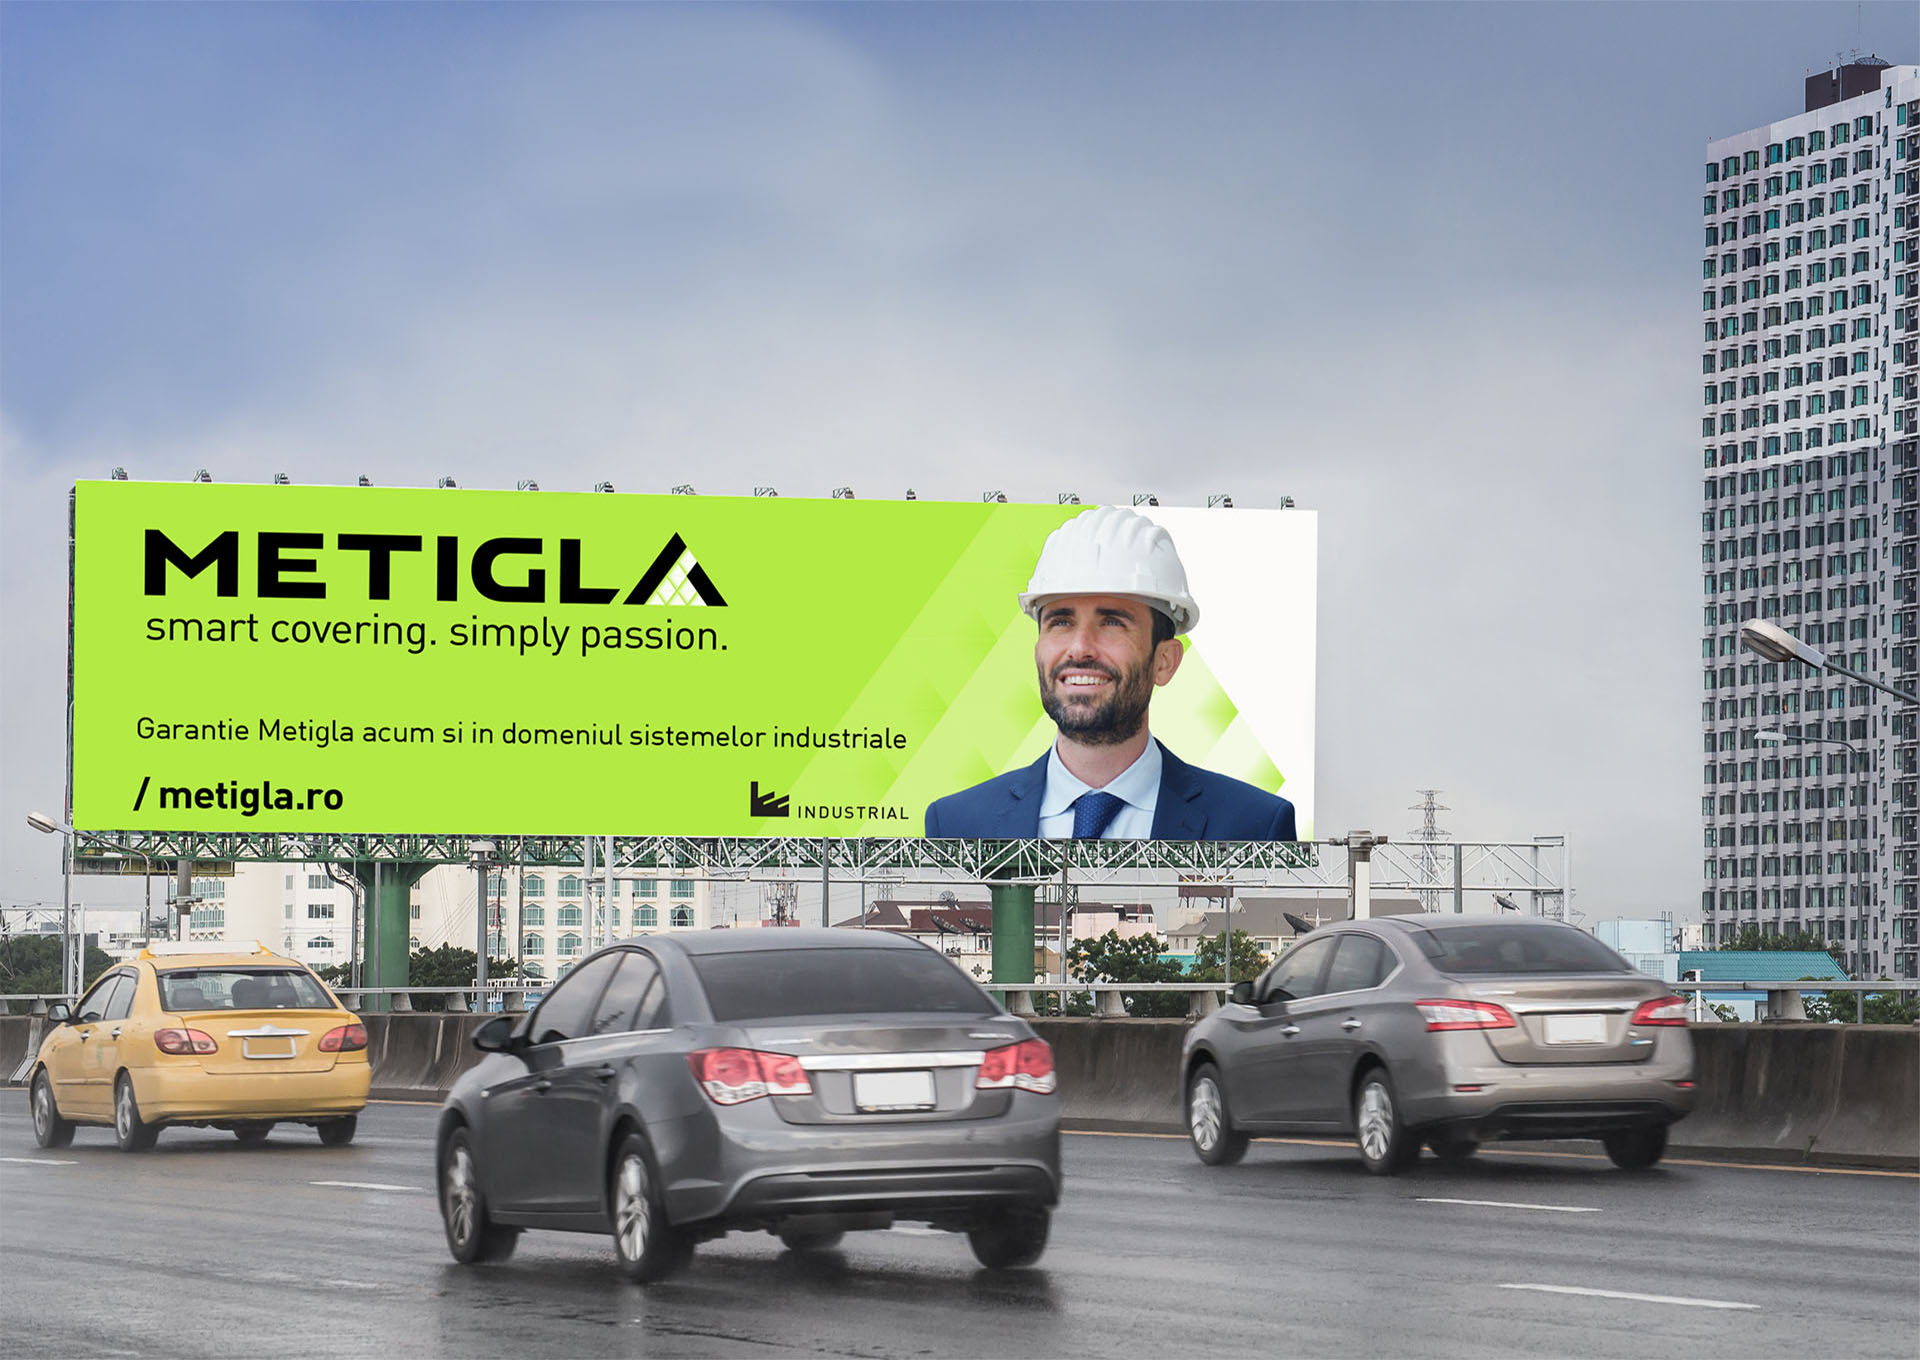 metigla branding outside